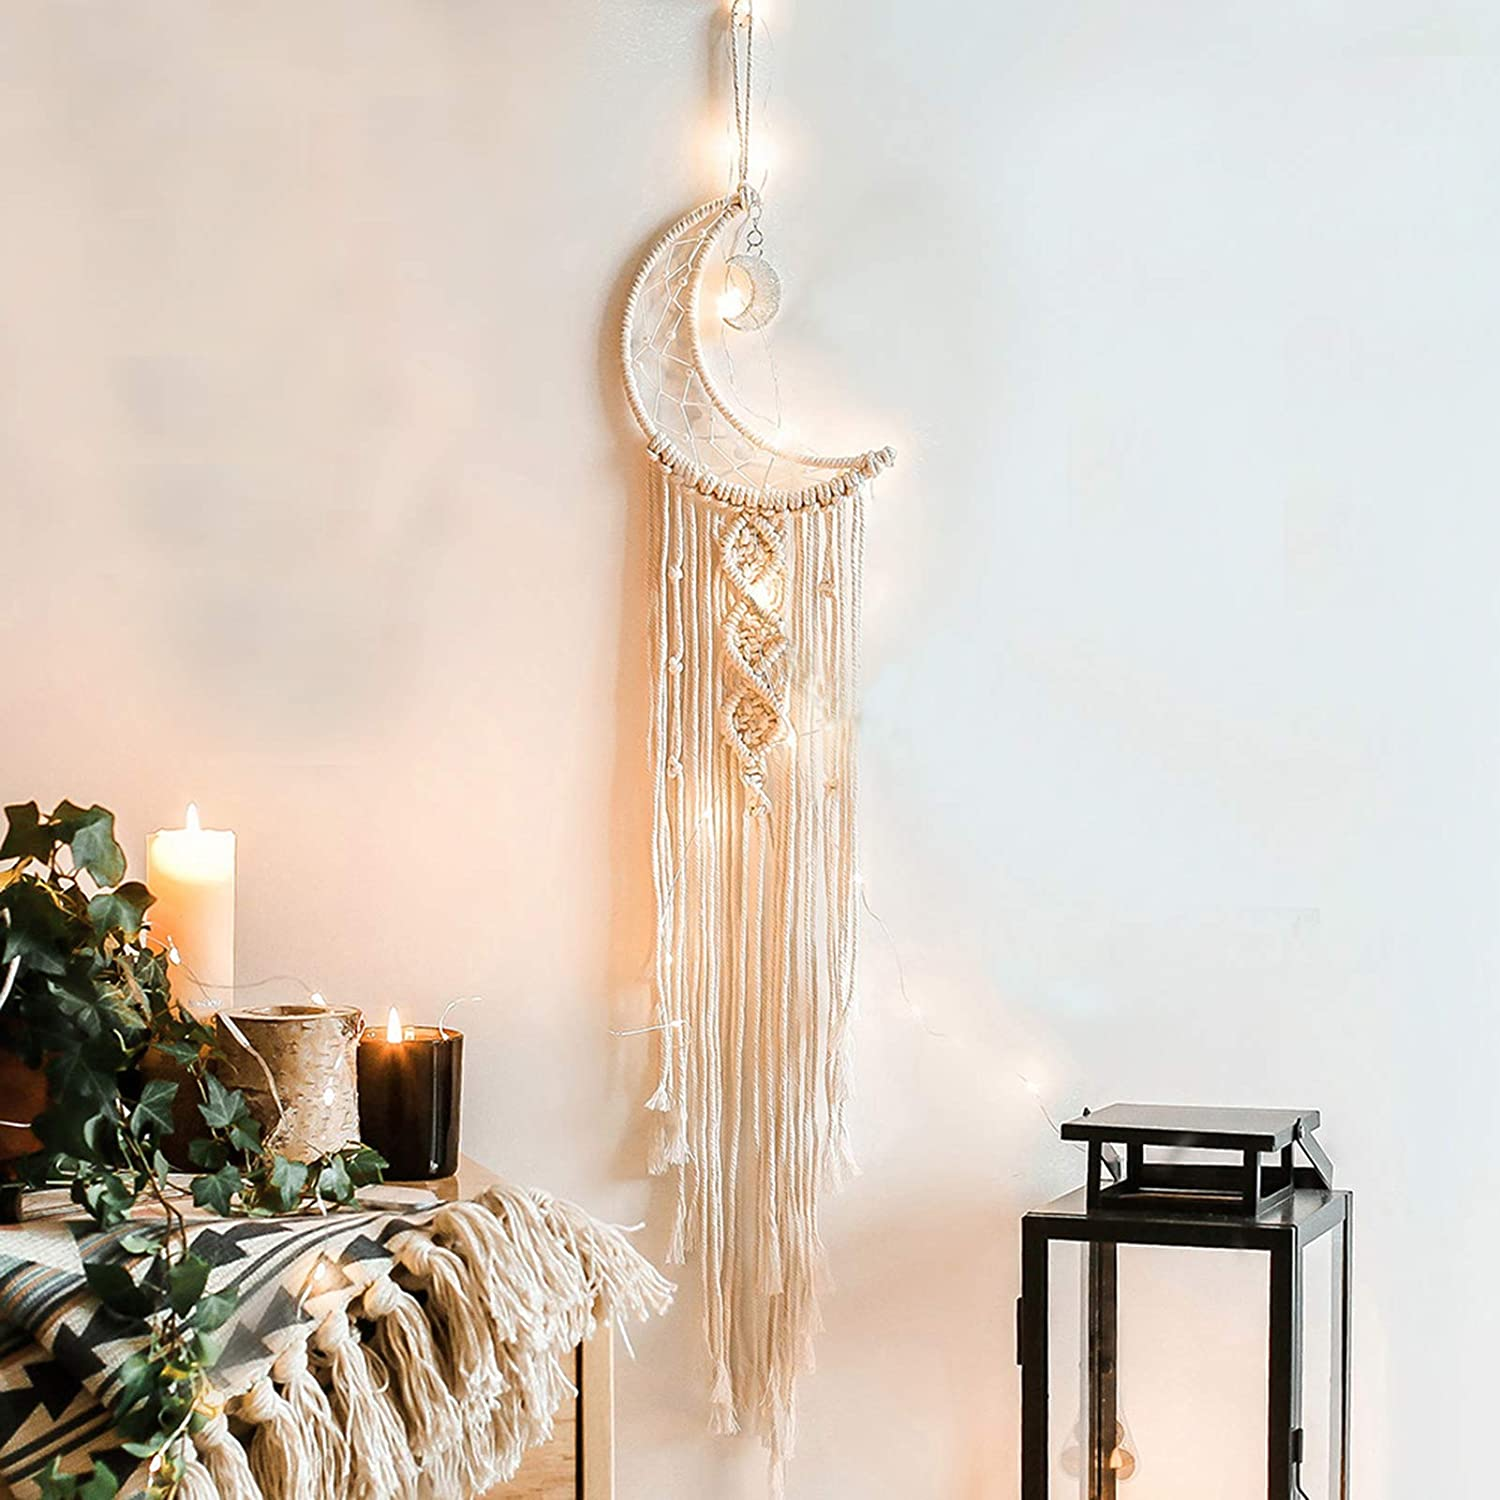 BENBOR Moon Dream Catcher Macrame Wall Hanging, Moon Dream Catcher with LED Lights Boho Chic Bohemian Home Decor Wall Art Decor for Children's Room Decoration, Home Decoration, Craft Gifts